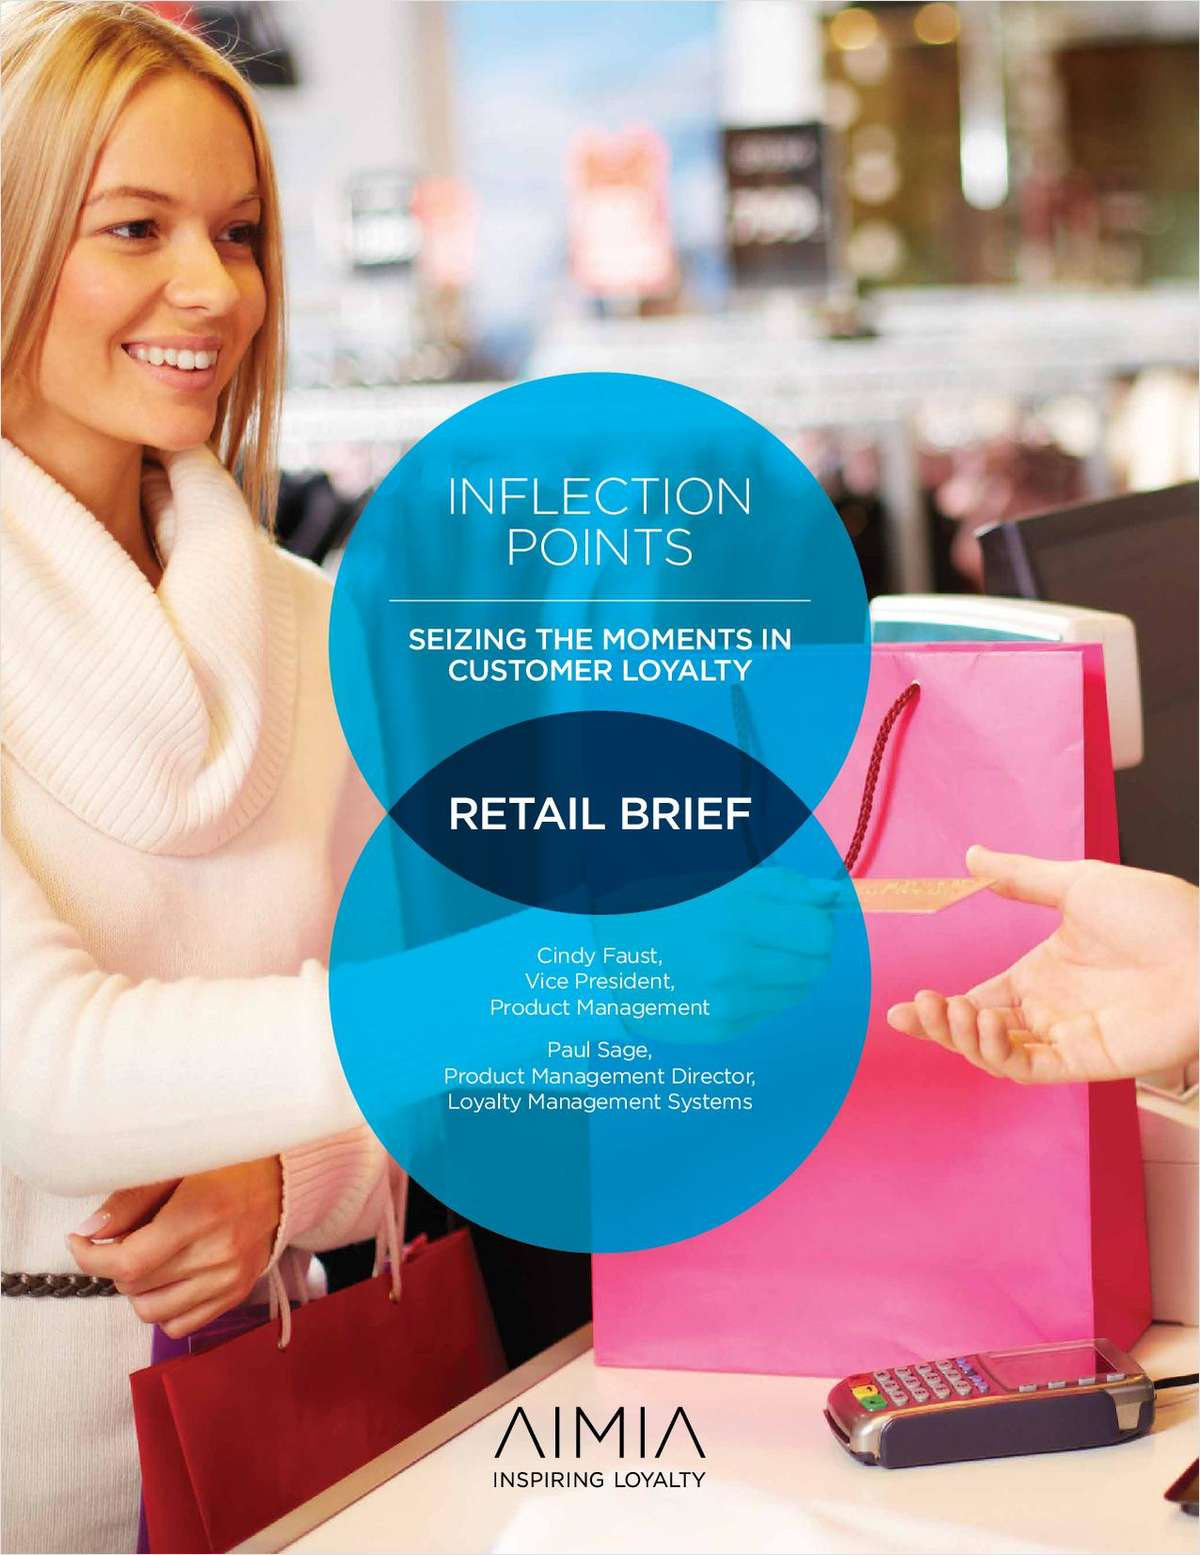 Seizing The Moments In Customer Loyalty